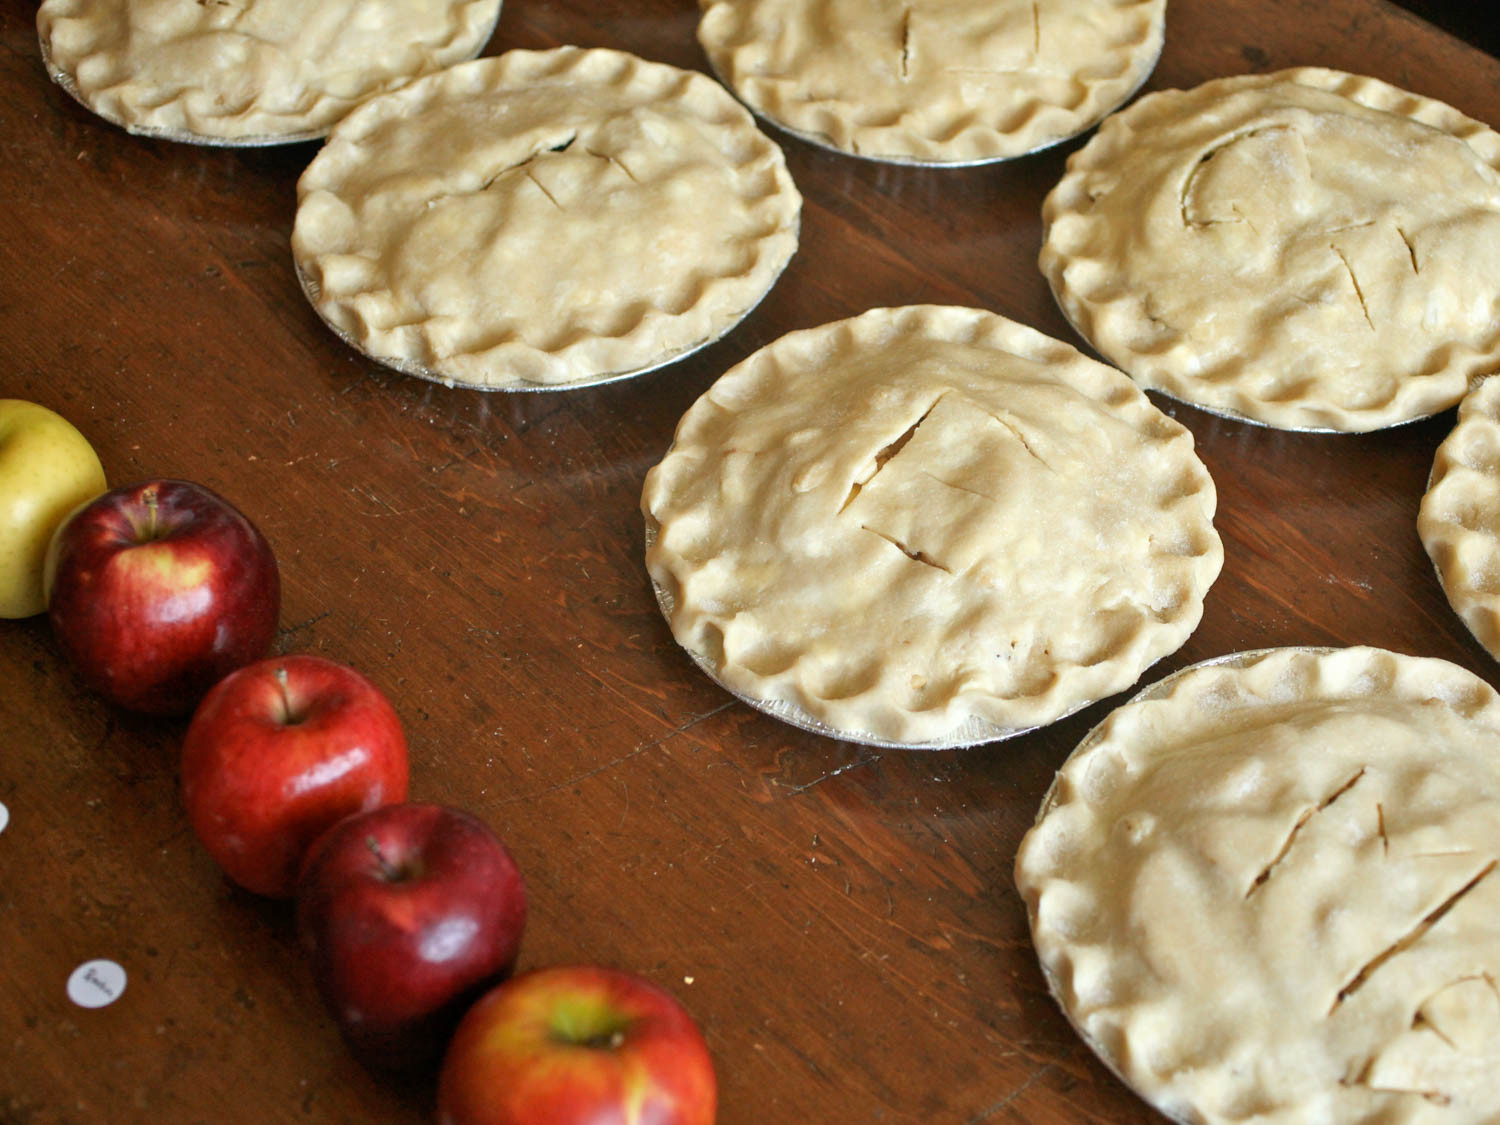 Best Apple For Pie  The Food Lab s Apple Pie Part 1 What Are the Best Apples